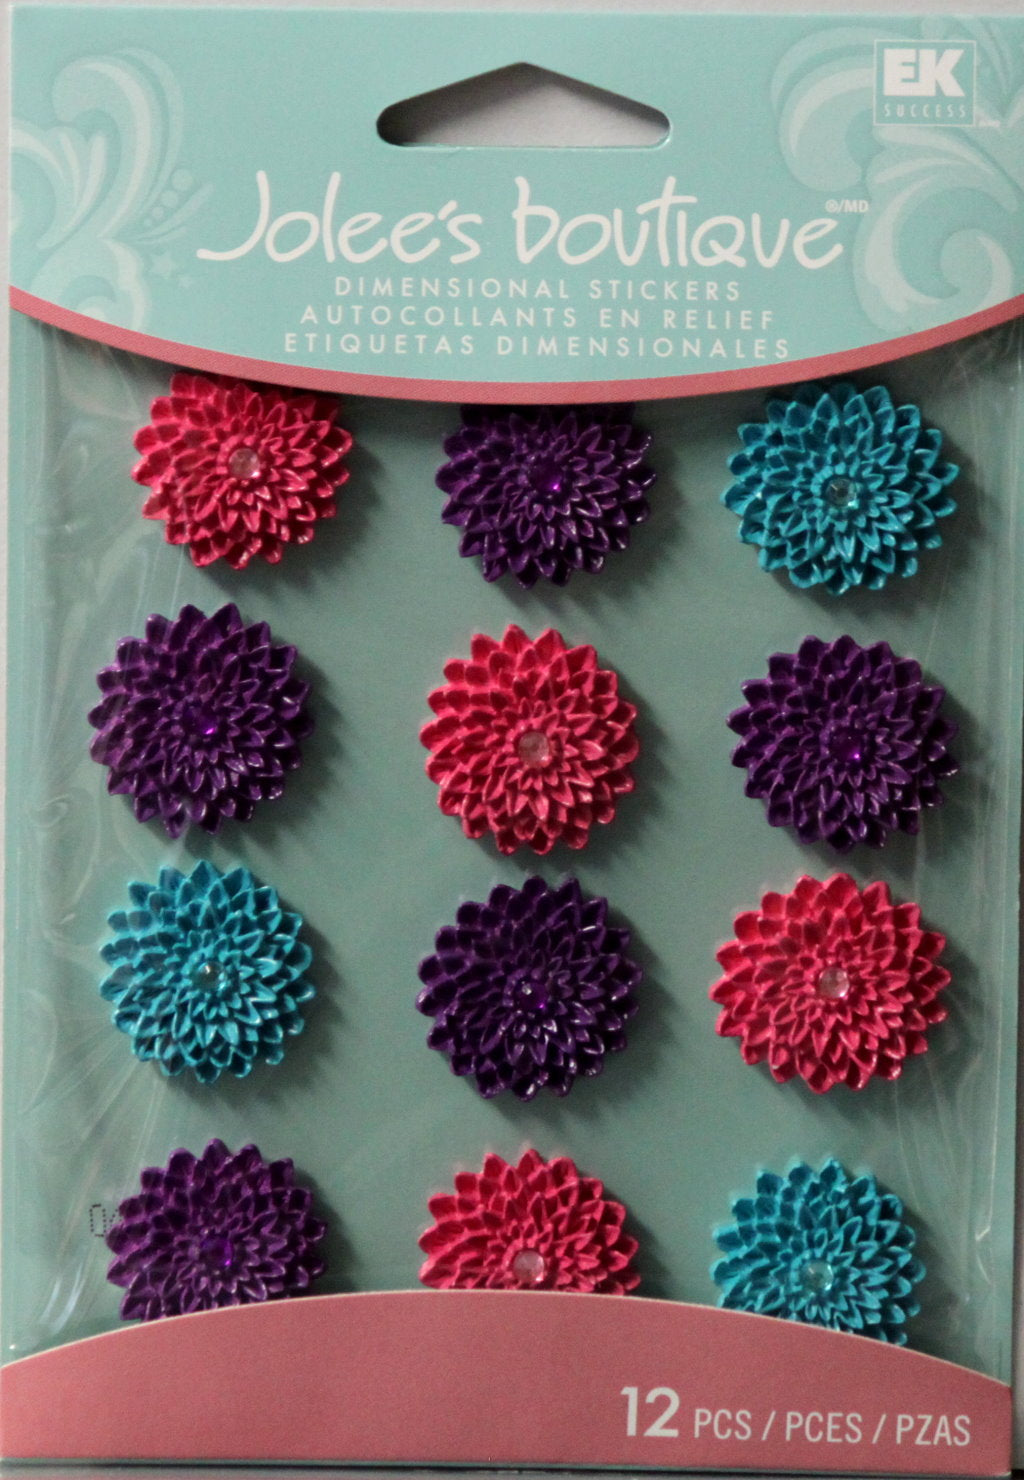 Jolee's Boutique Mums Cabochons Dimensional Stickers